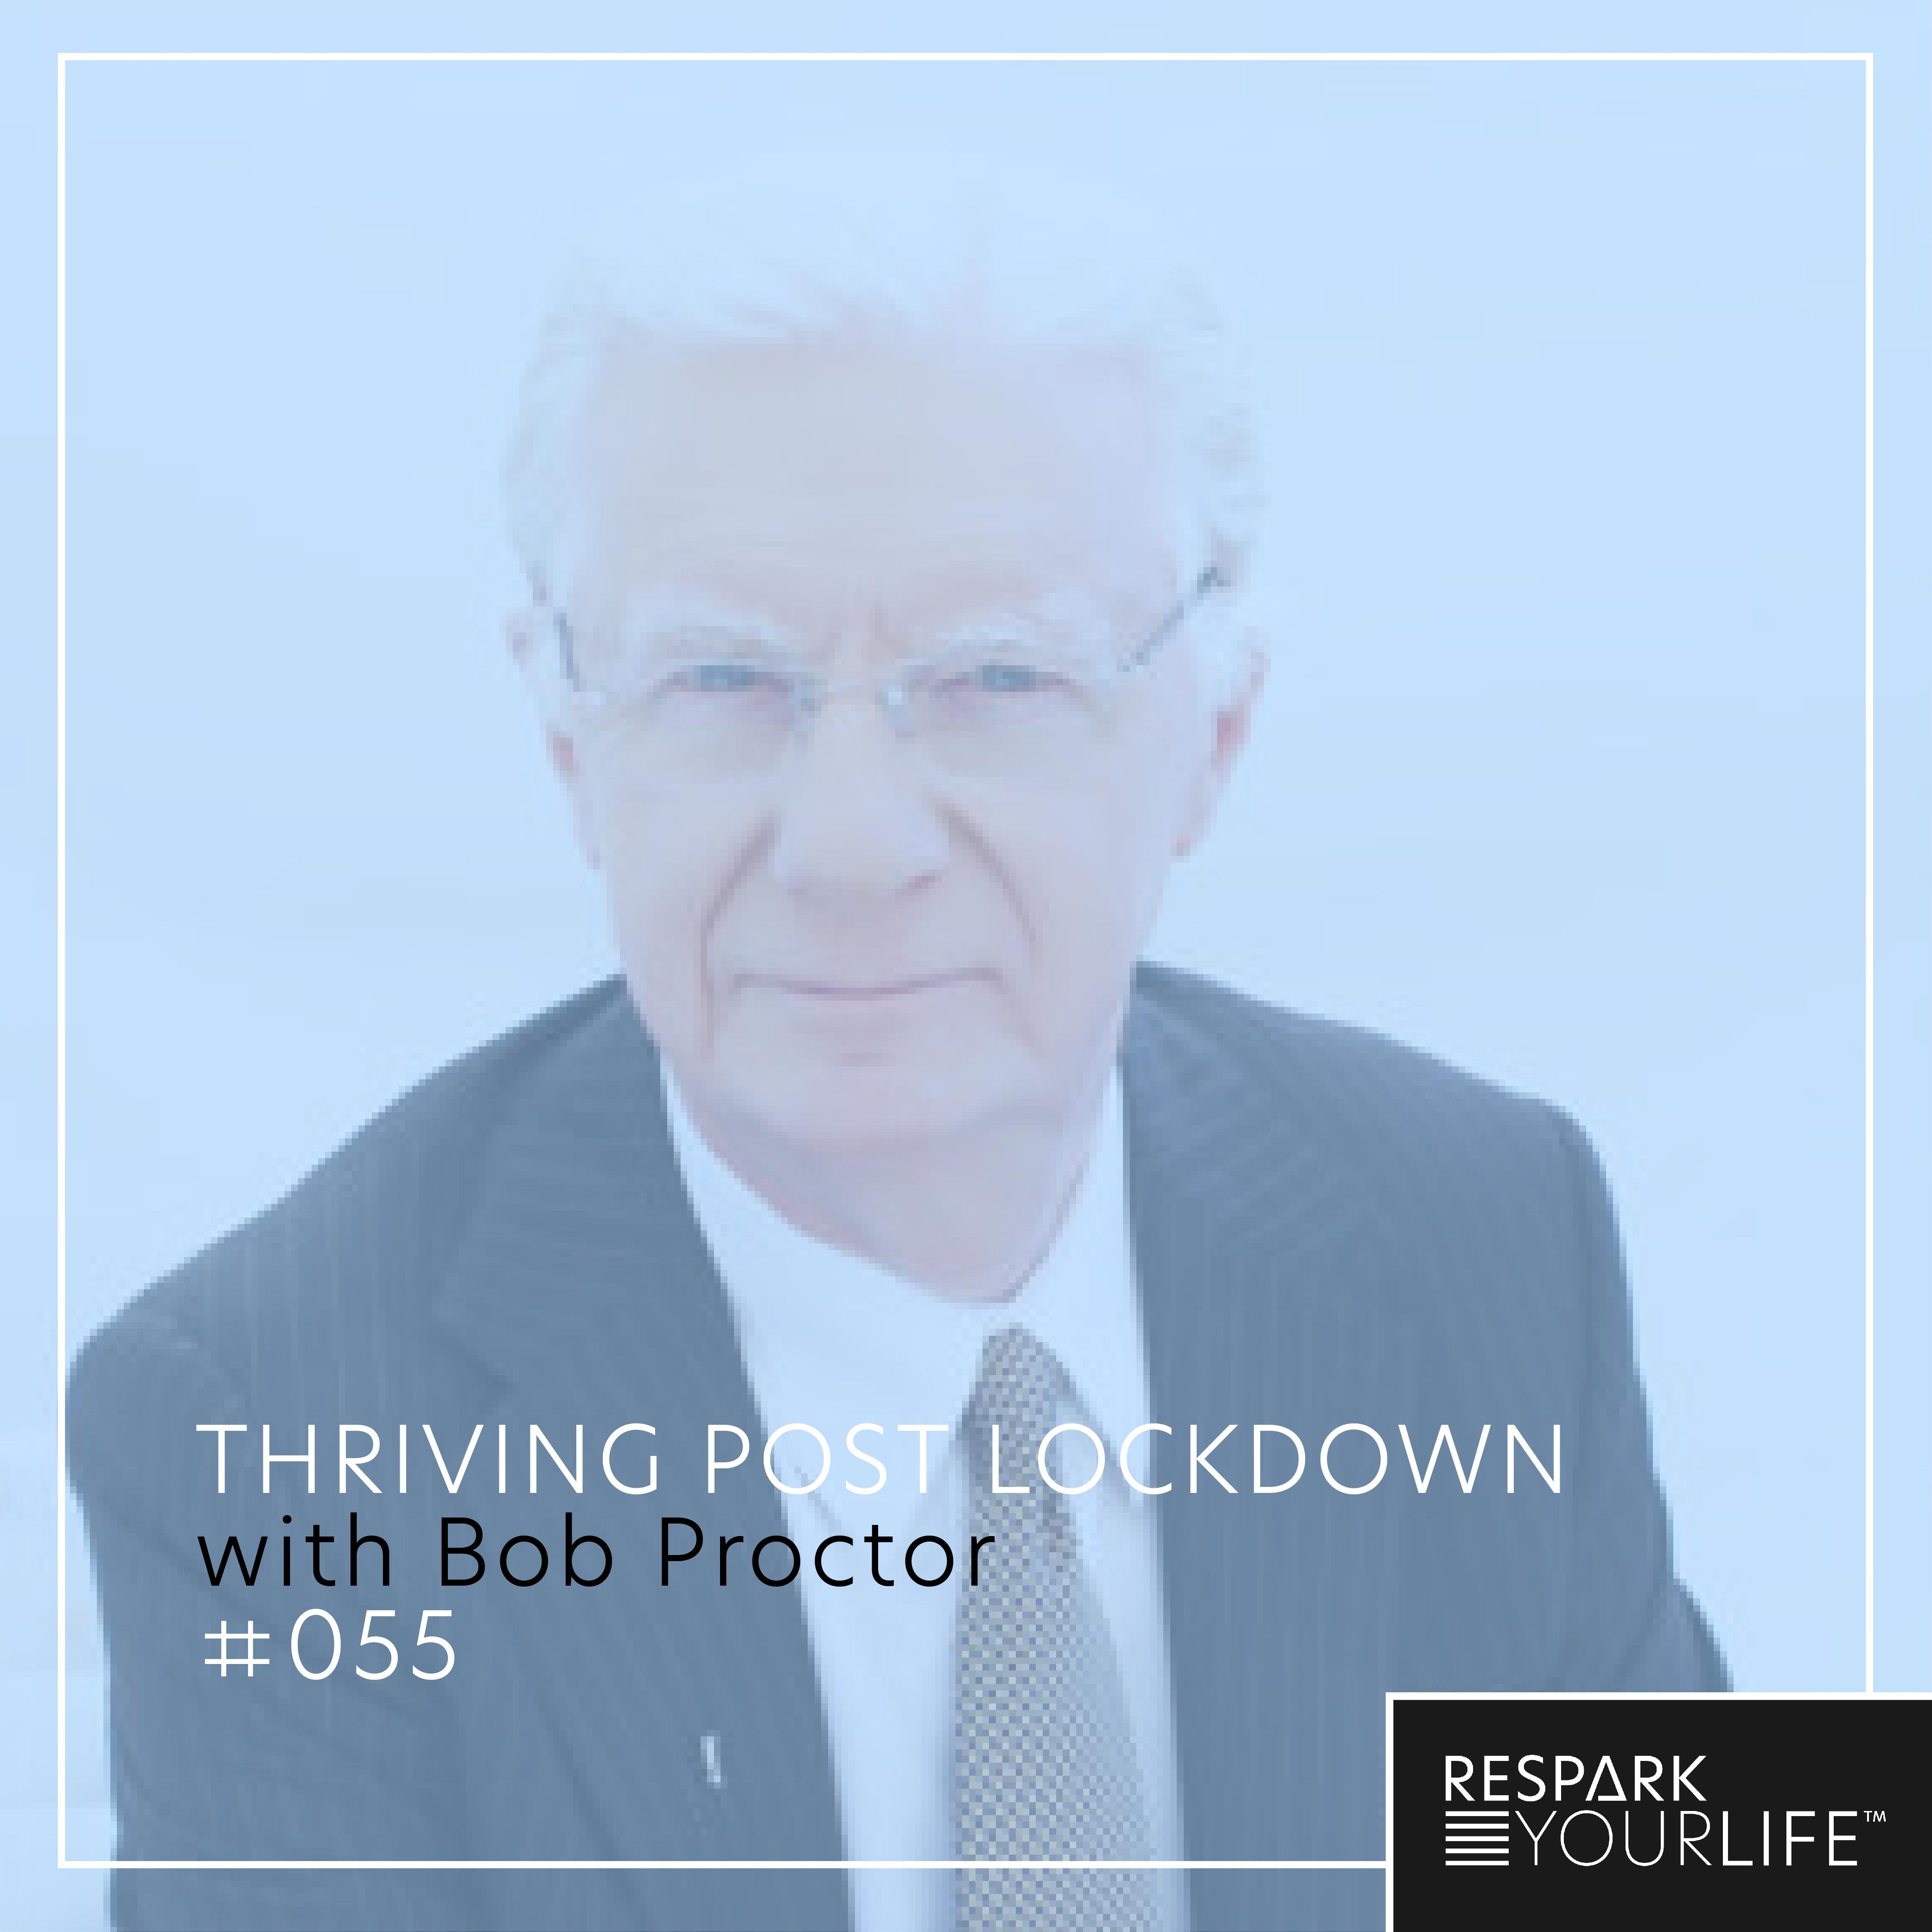 Thriving Post Lockdown with Bob Proctor